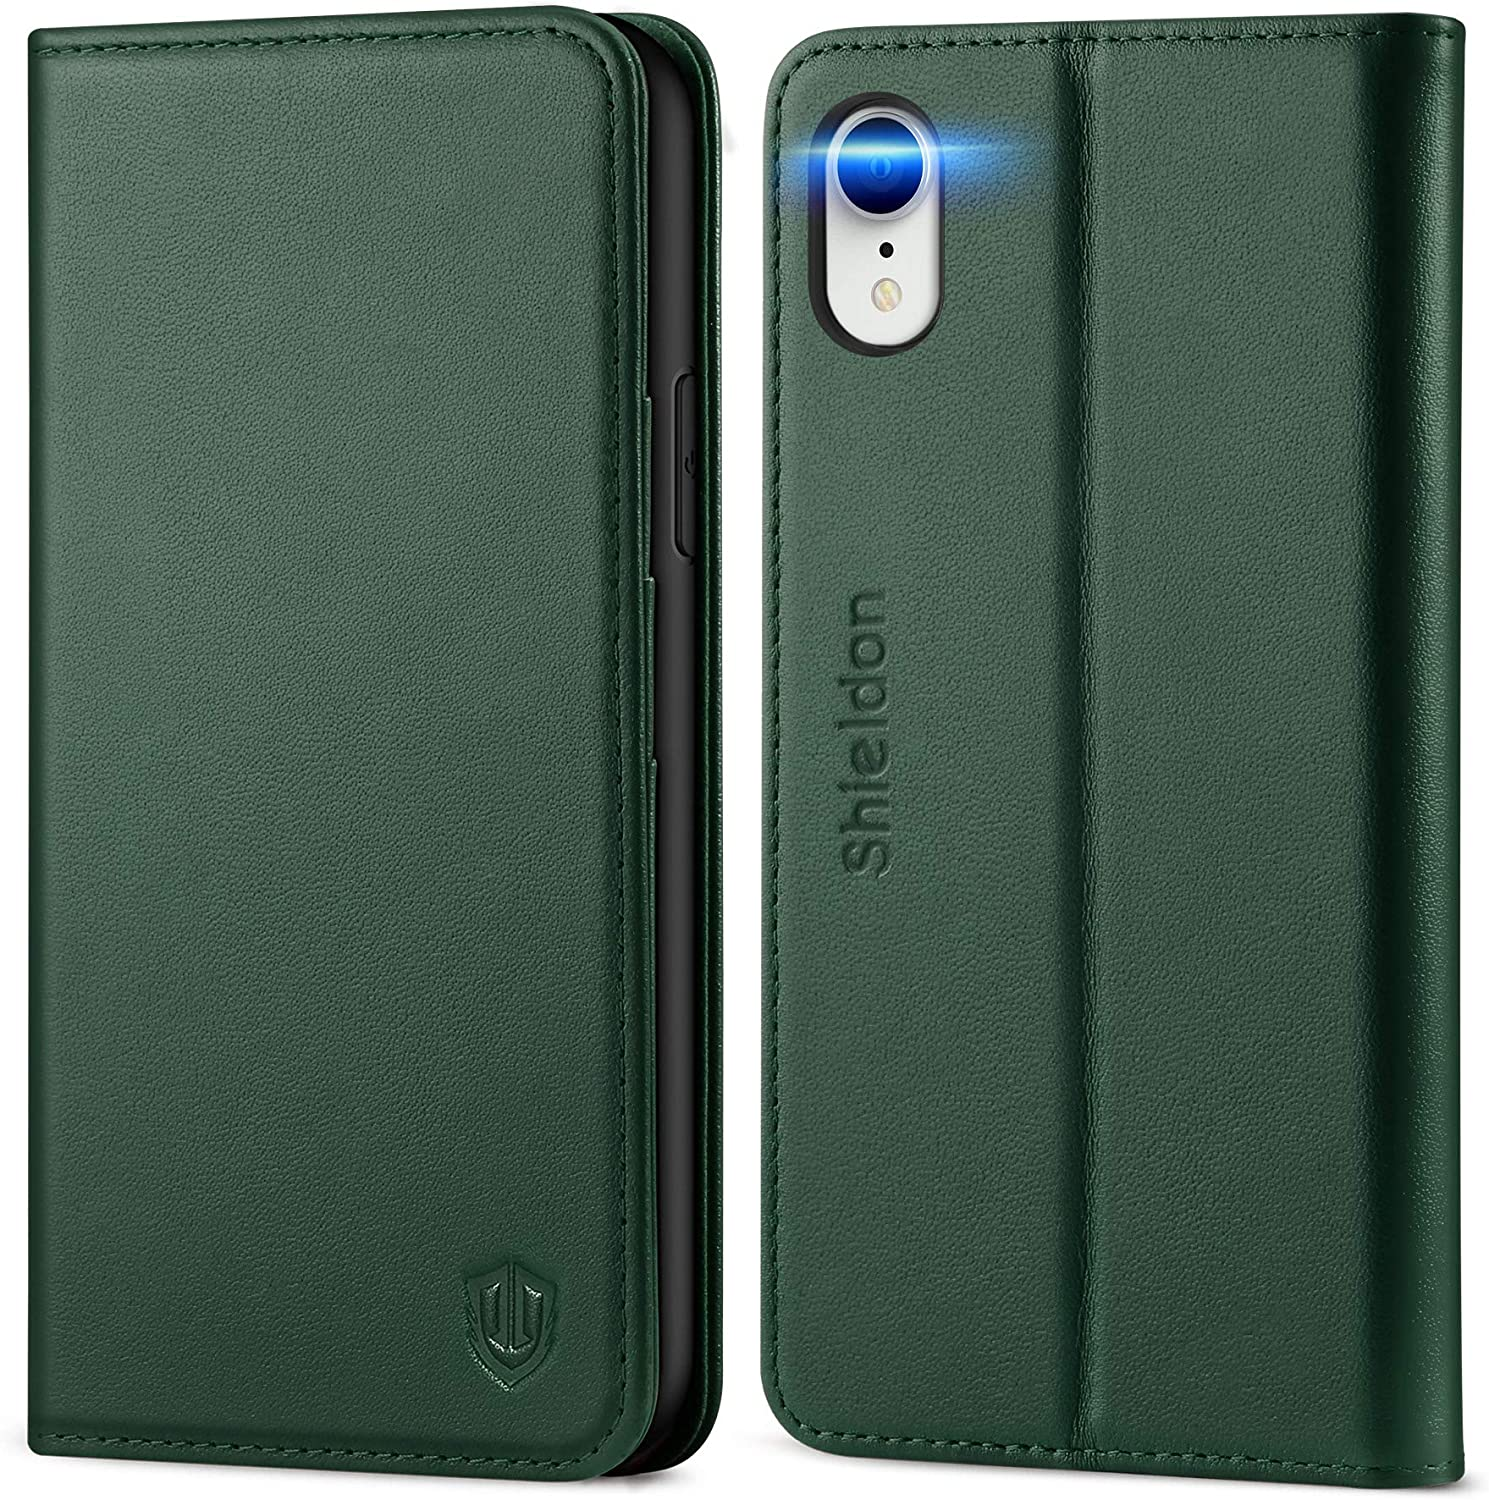 SHIELDON iPhone XR Case, iPhone XR Wallet Case, Genuine Leather iPhone XR Flip Magnetic Cover RFID Blocking Card Slots Kickstand Shockproof Case Compatible with iPhone XR (6.1 Inch) - Midnight Green